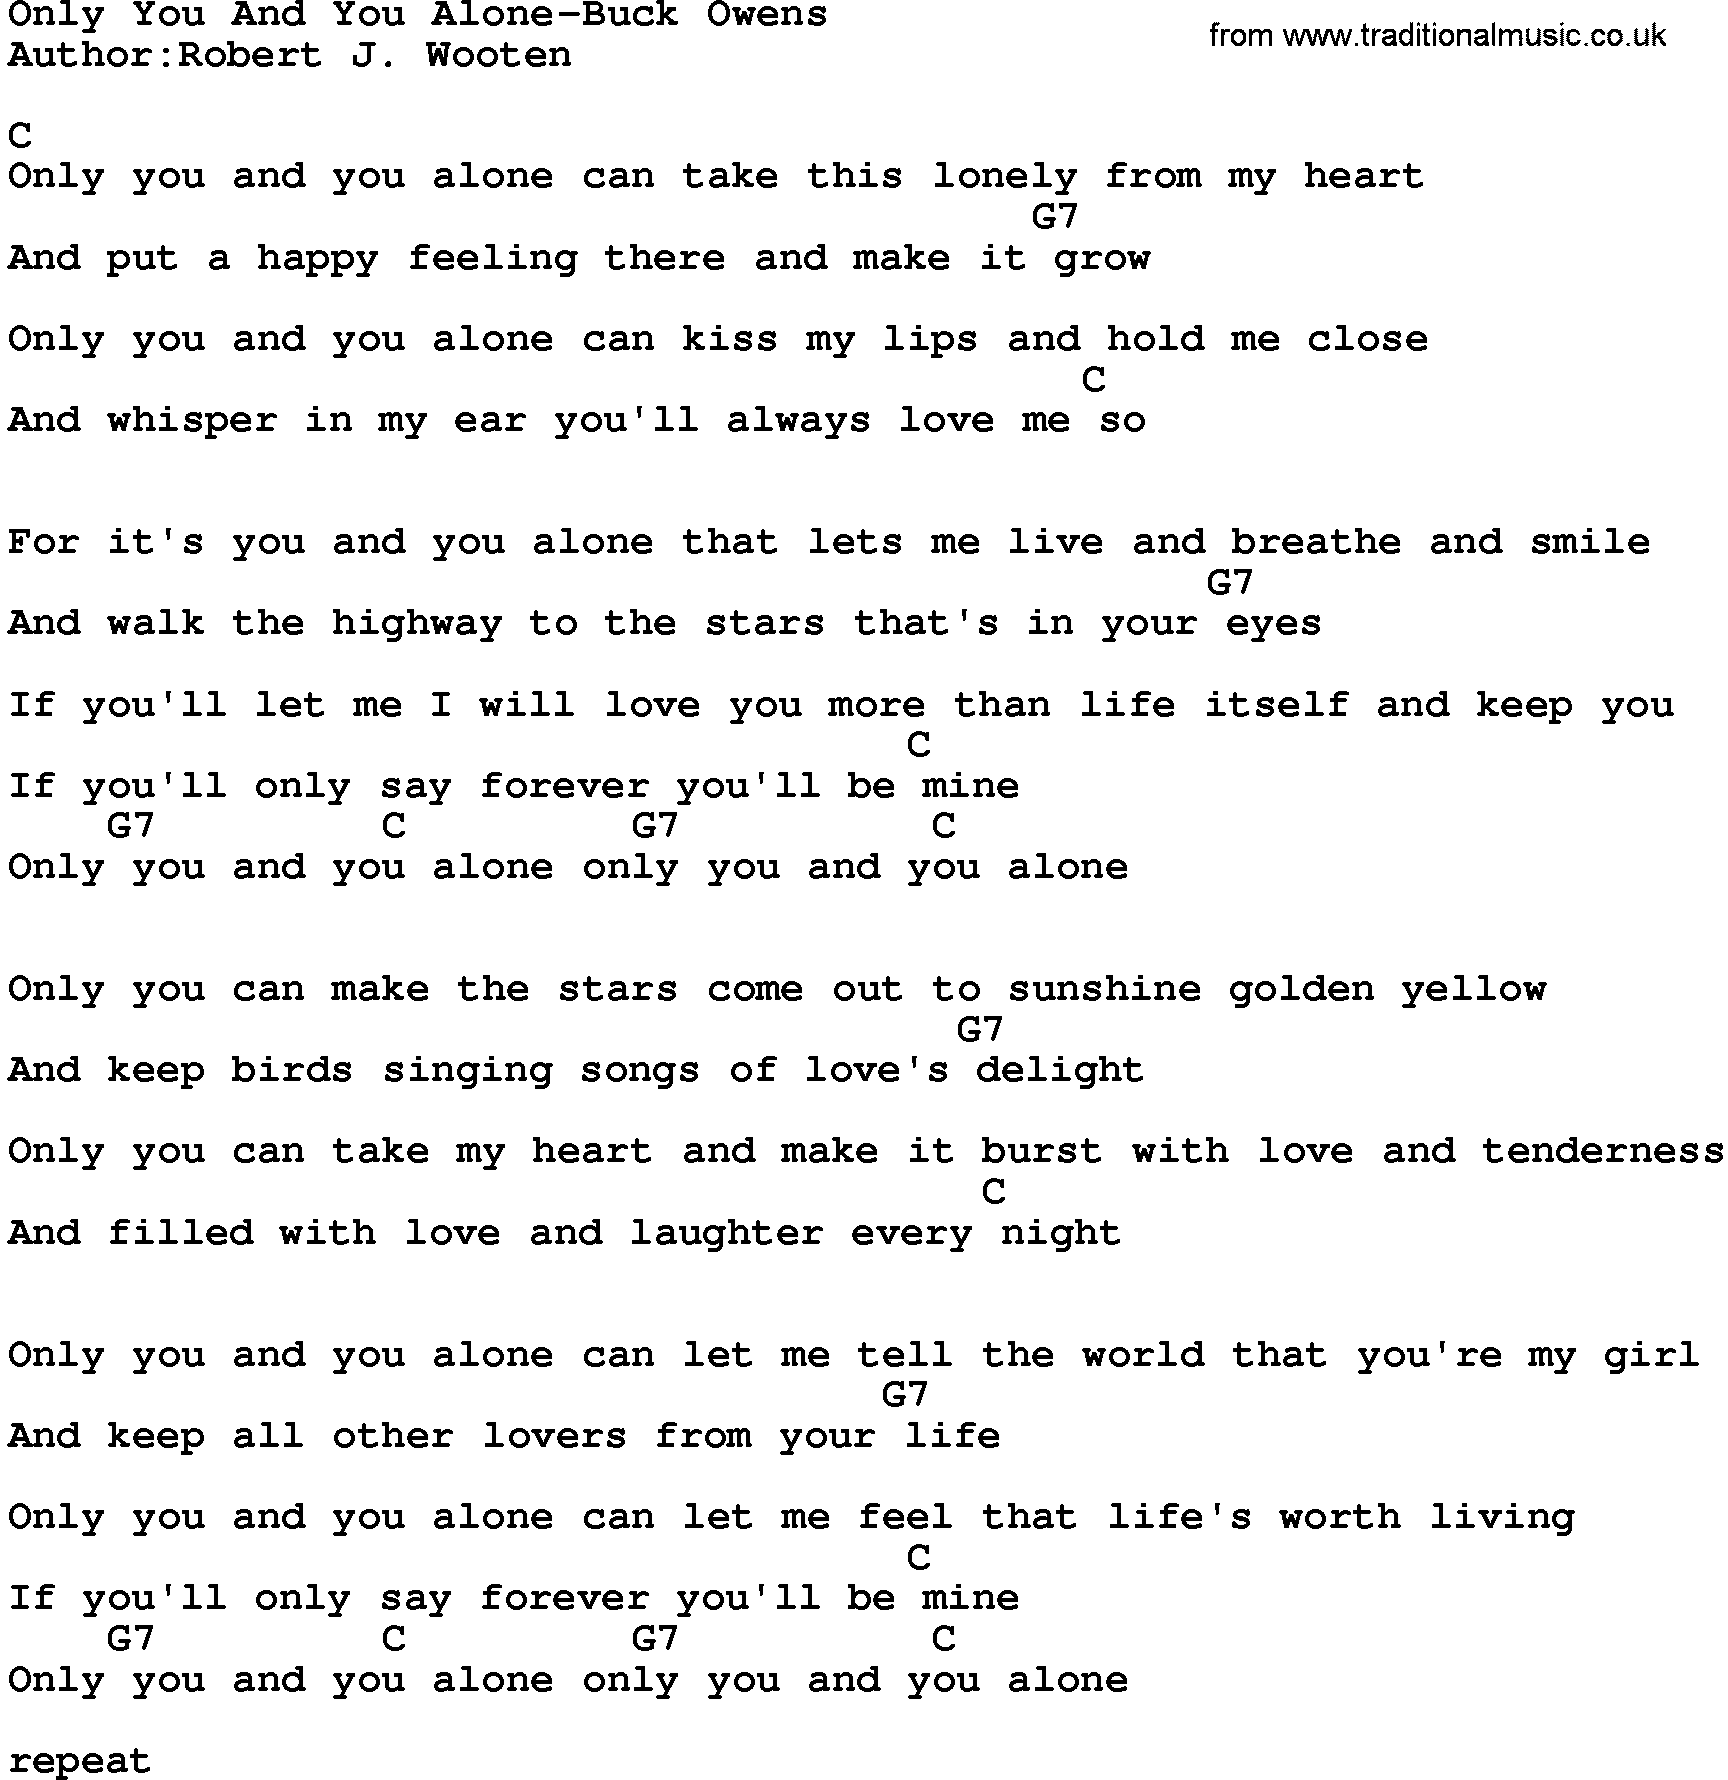 Country Musiconly You And You Alone Buck Owens Lyrics And Chords